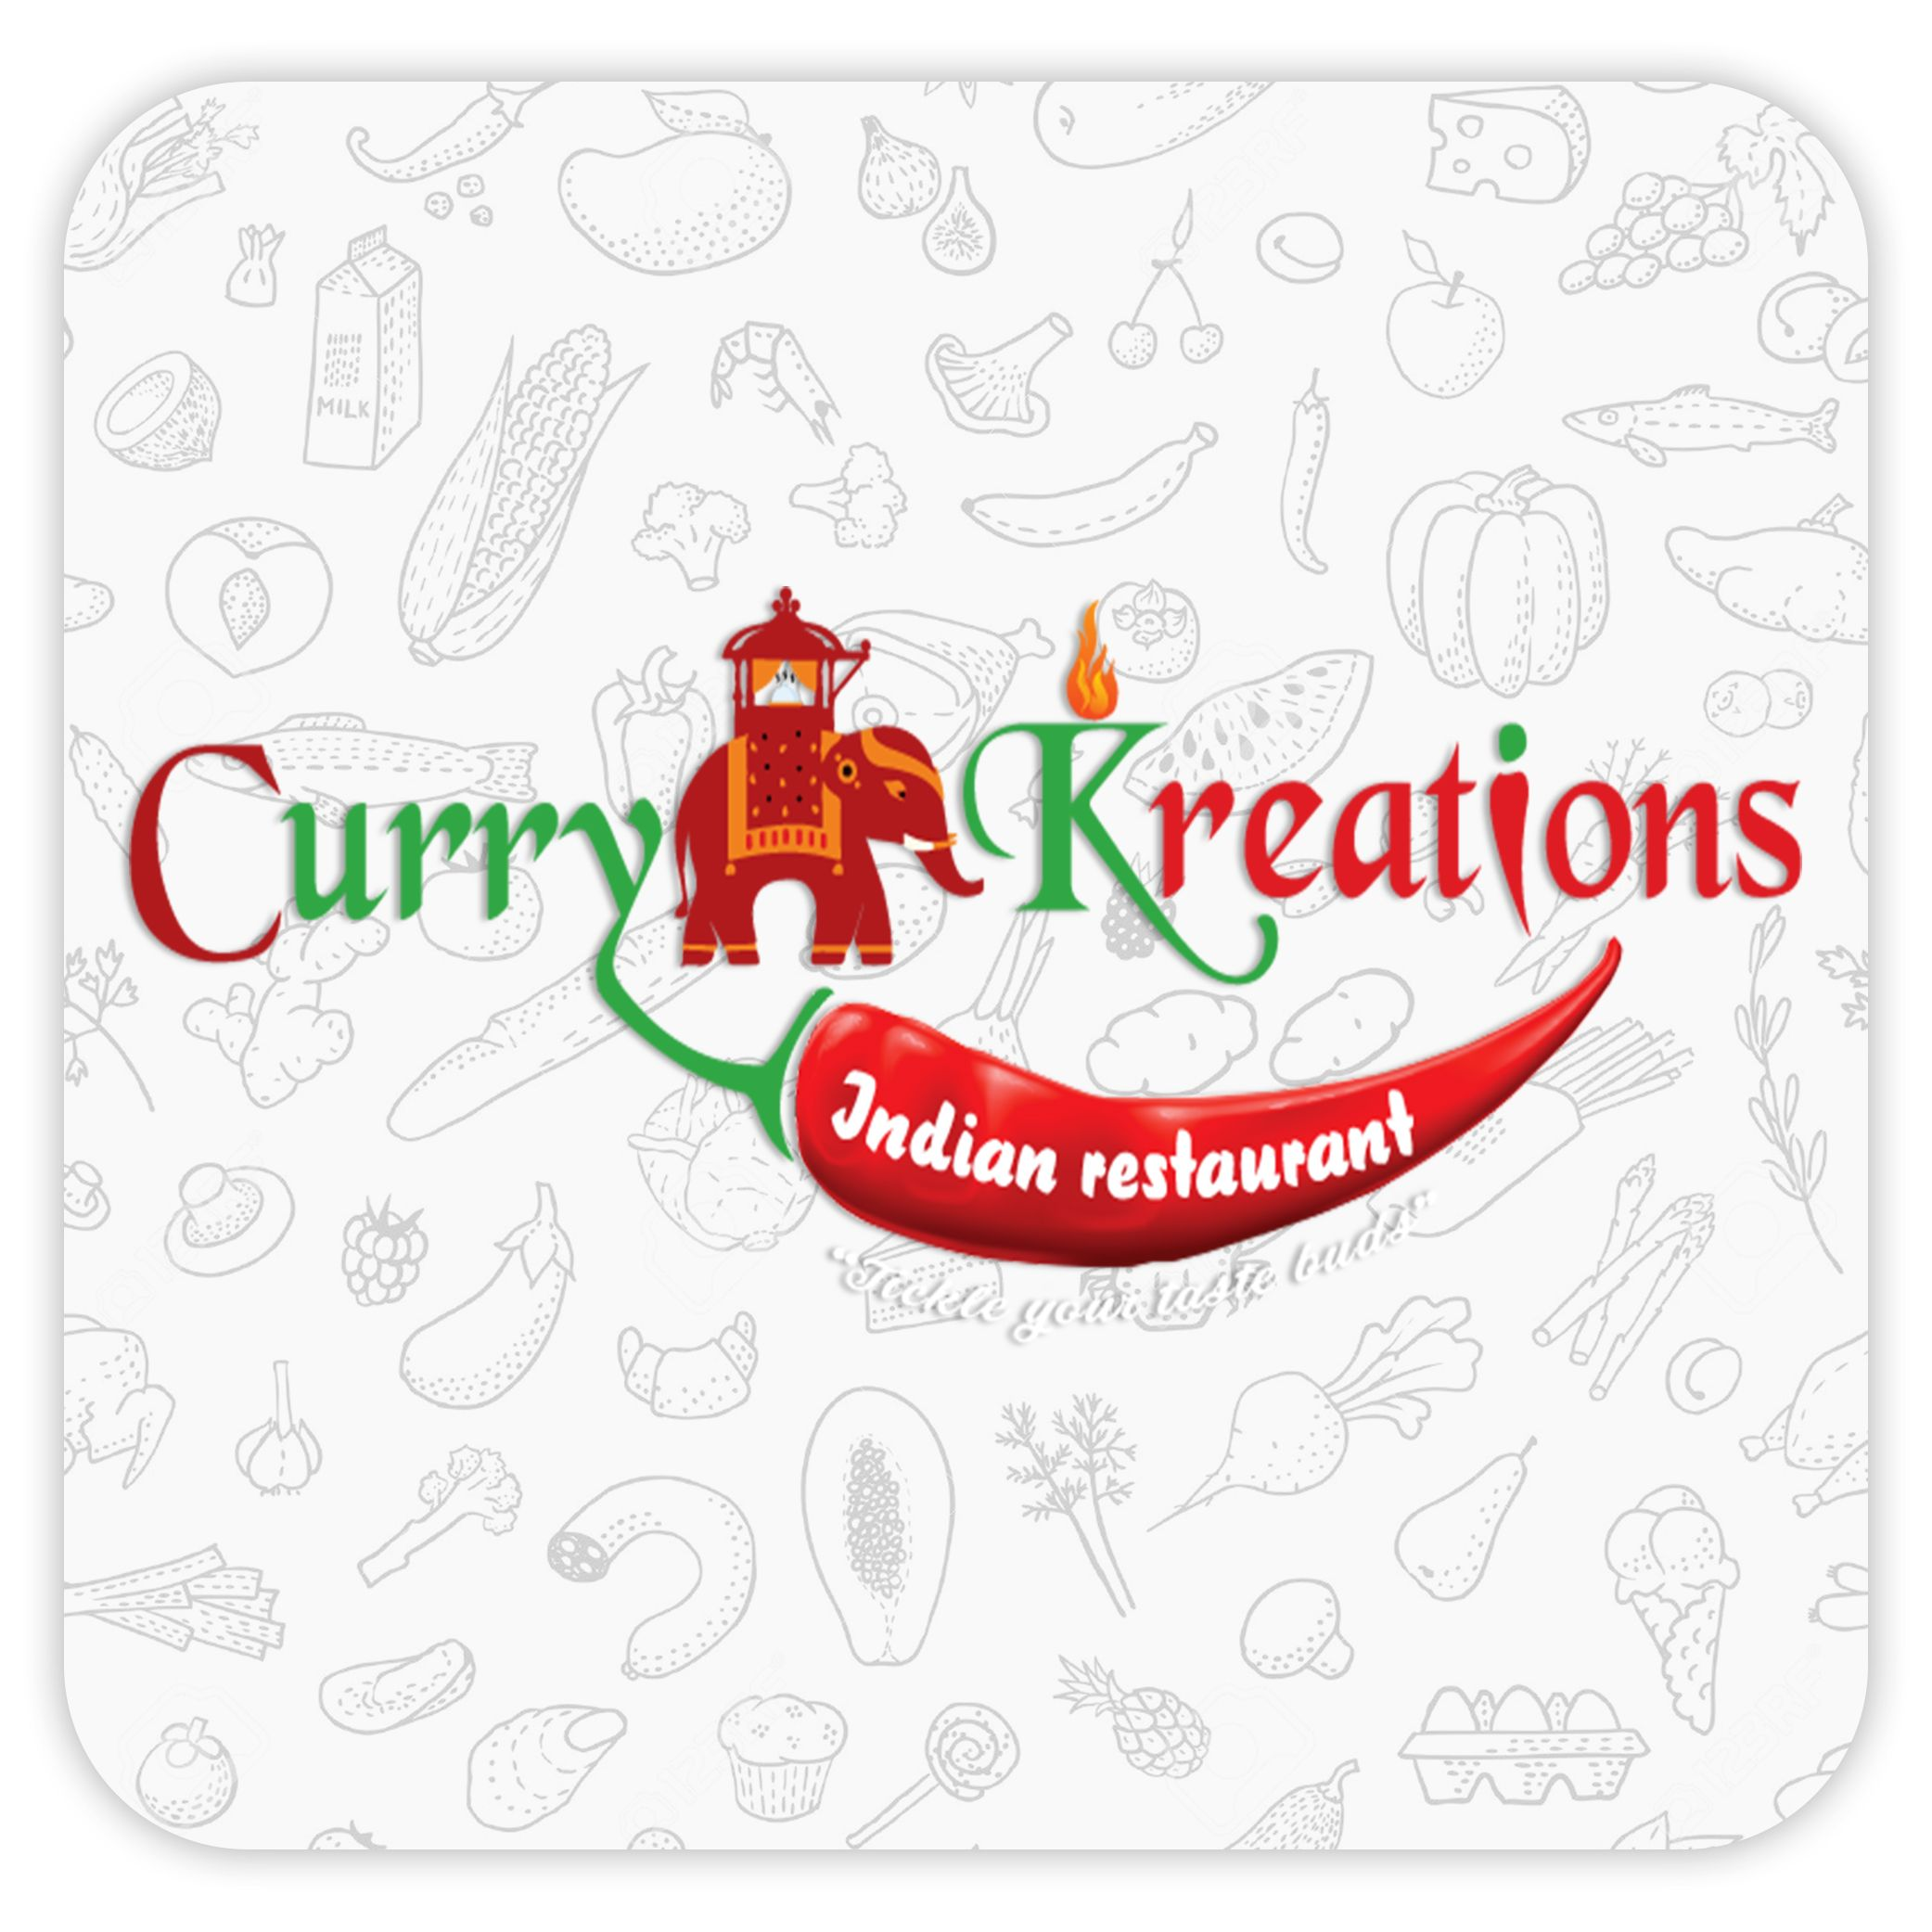 Curry Kreations Indian Restaurant and Cafe